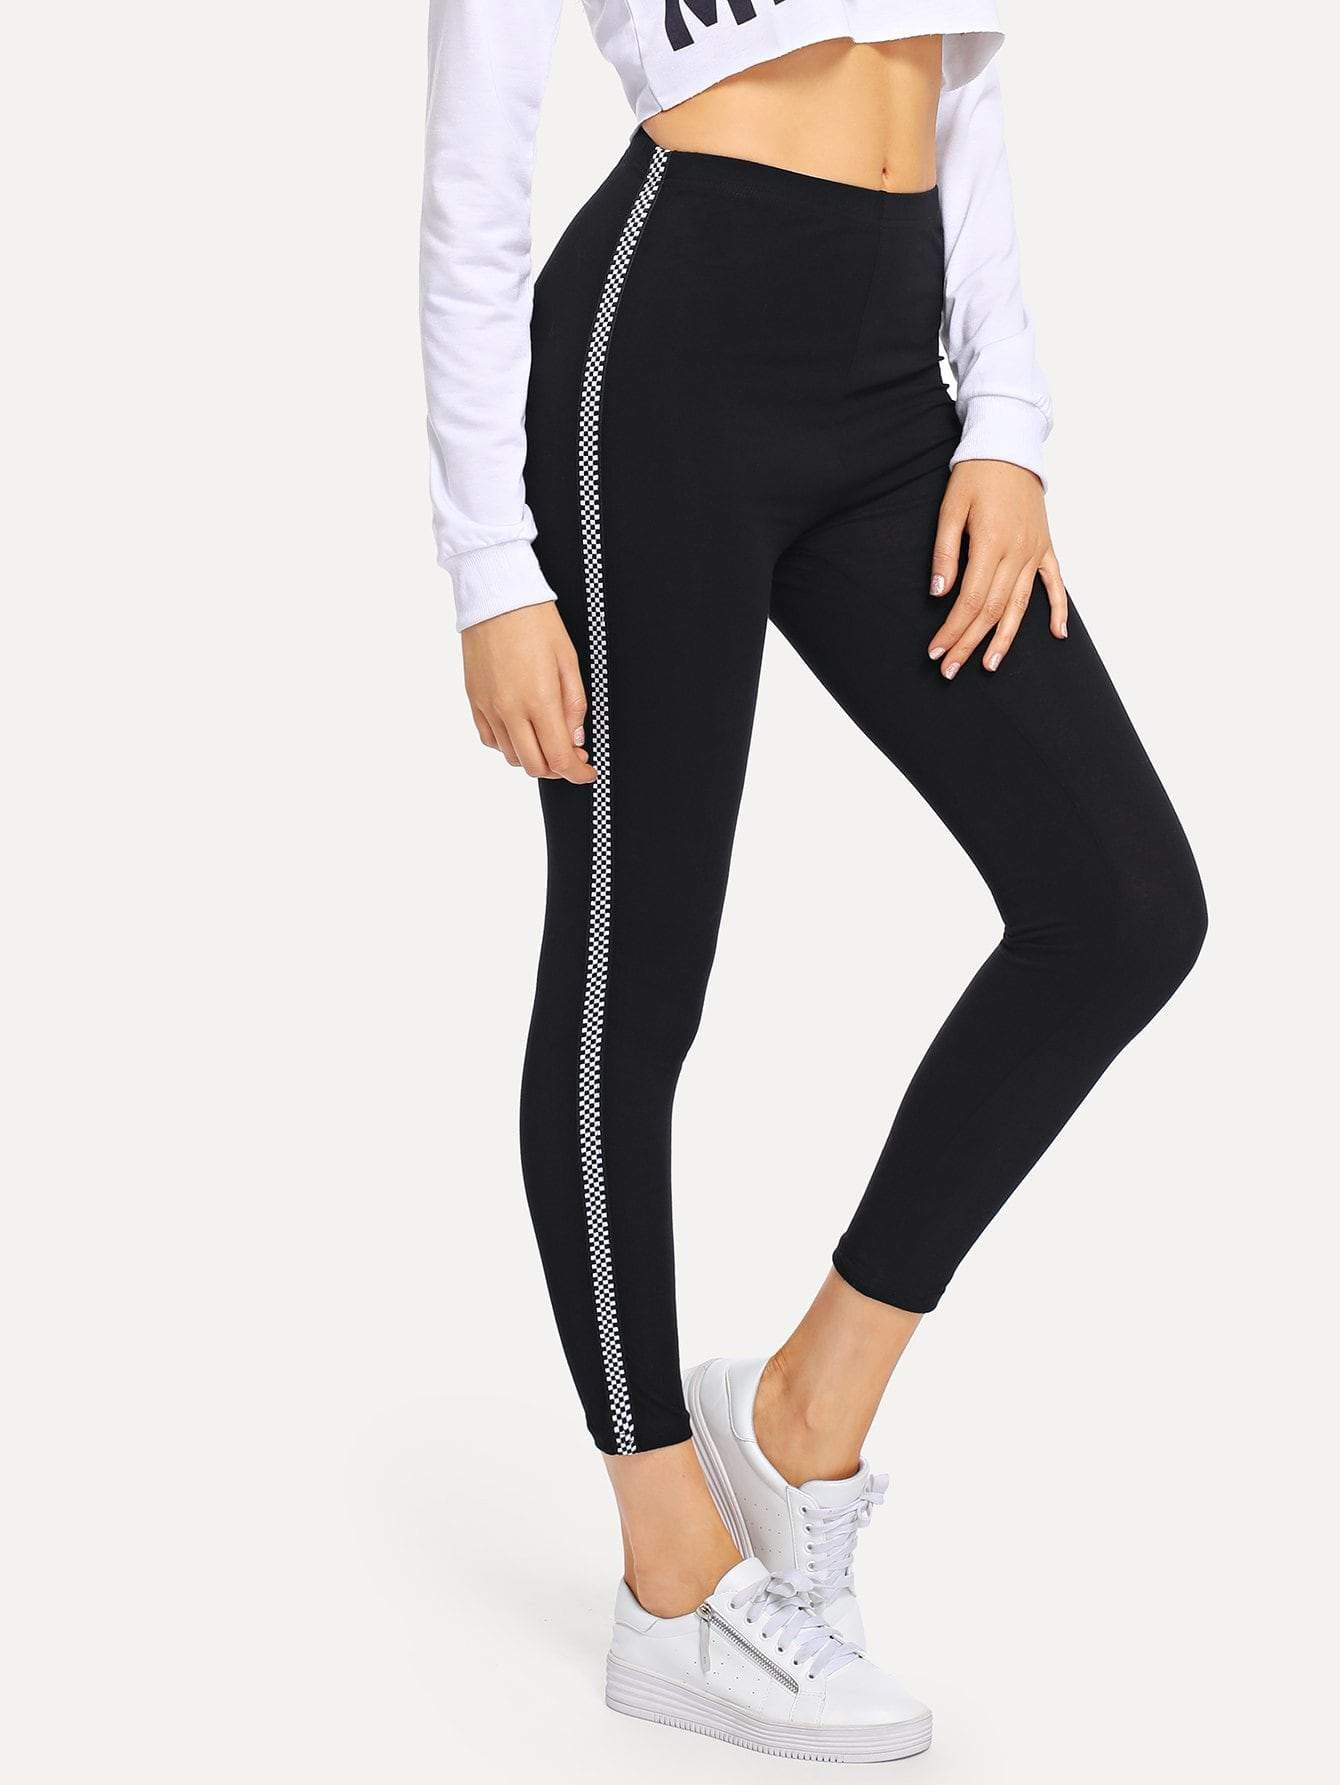 Checkered Side Leggings - Fittness Leggings